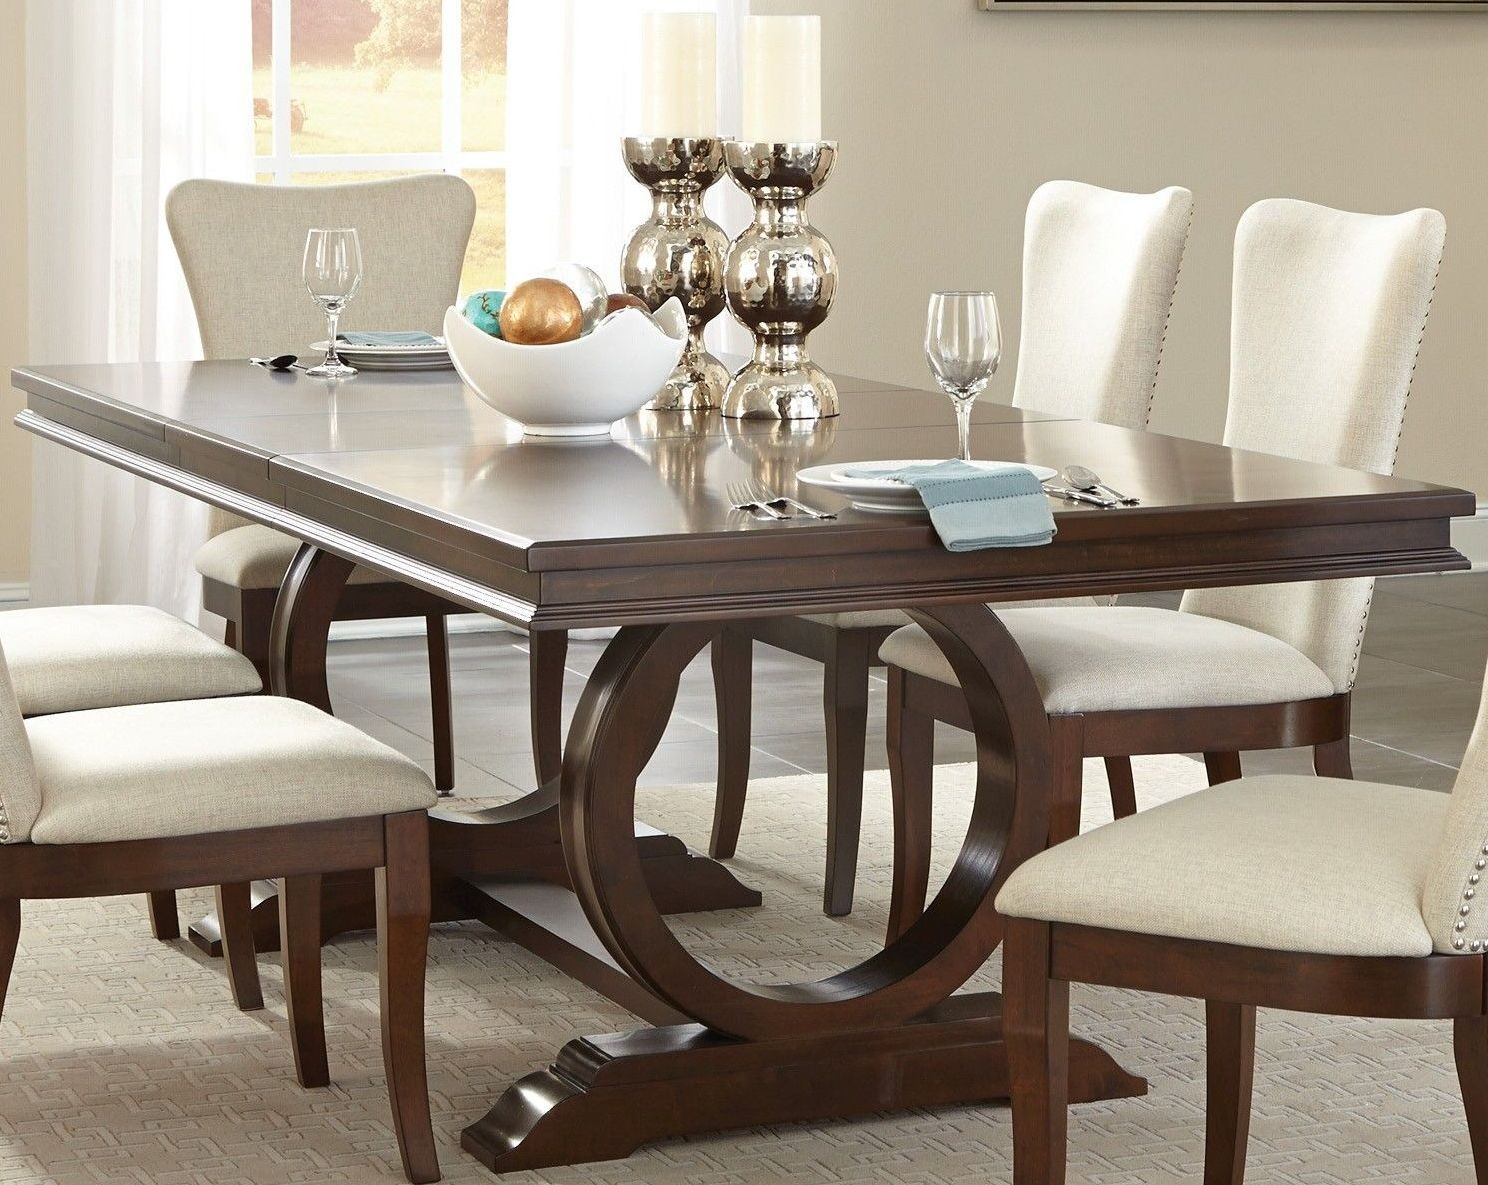 oratorio cherry extendable trestle dining table from homelegance coleman furniture. Black Bedroom Furniture Sets. Home Design Ideas